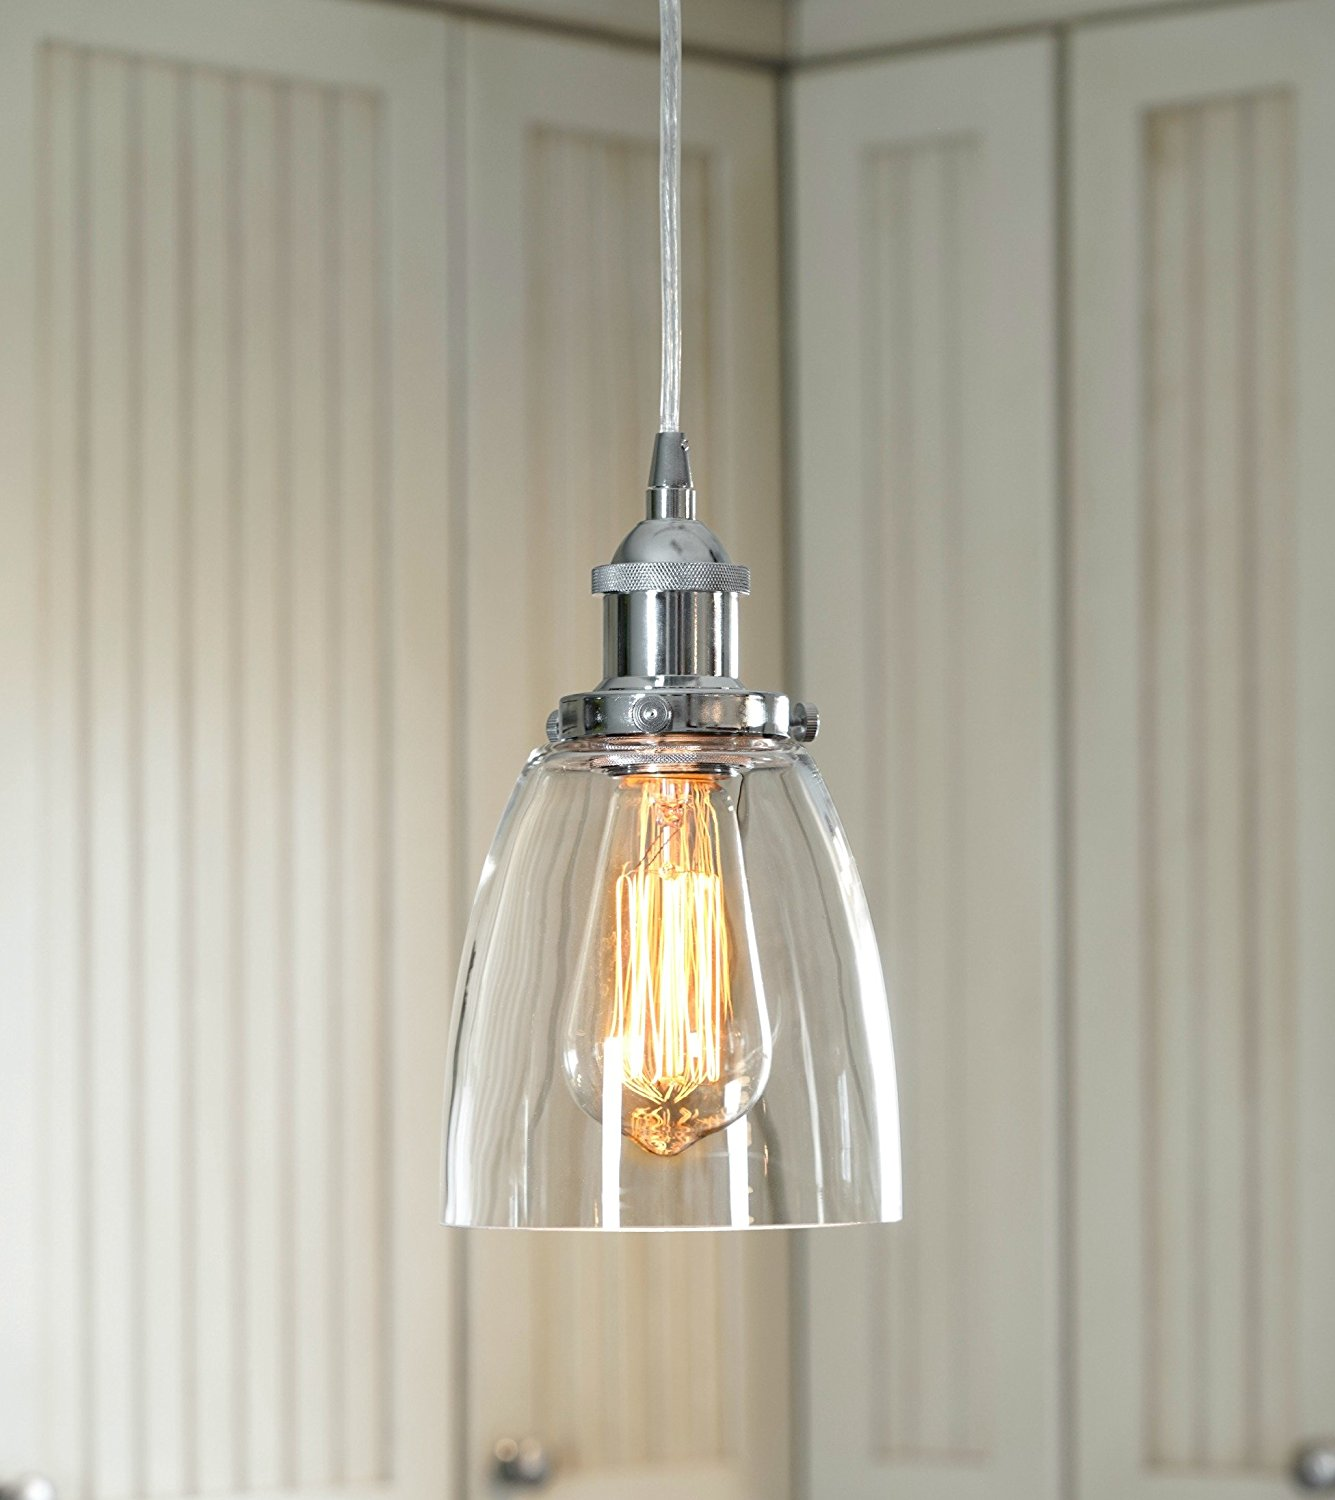 Cheap Modern Pendant Lighting For Kitchen Island Find Modern Pendant Lighting For Kitchen Island Deals On Line At Alibaba Com